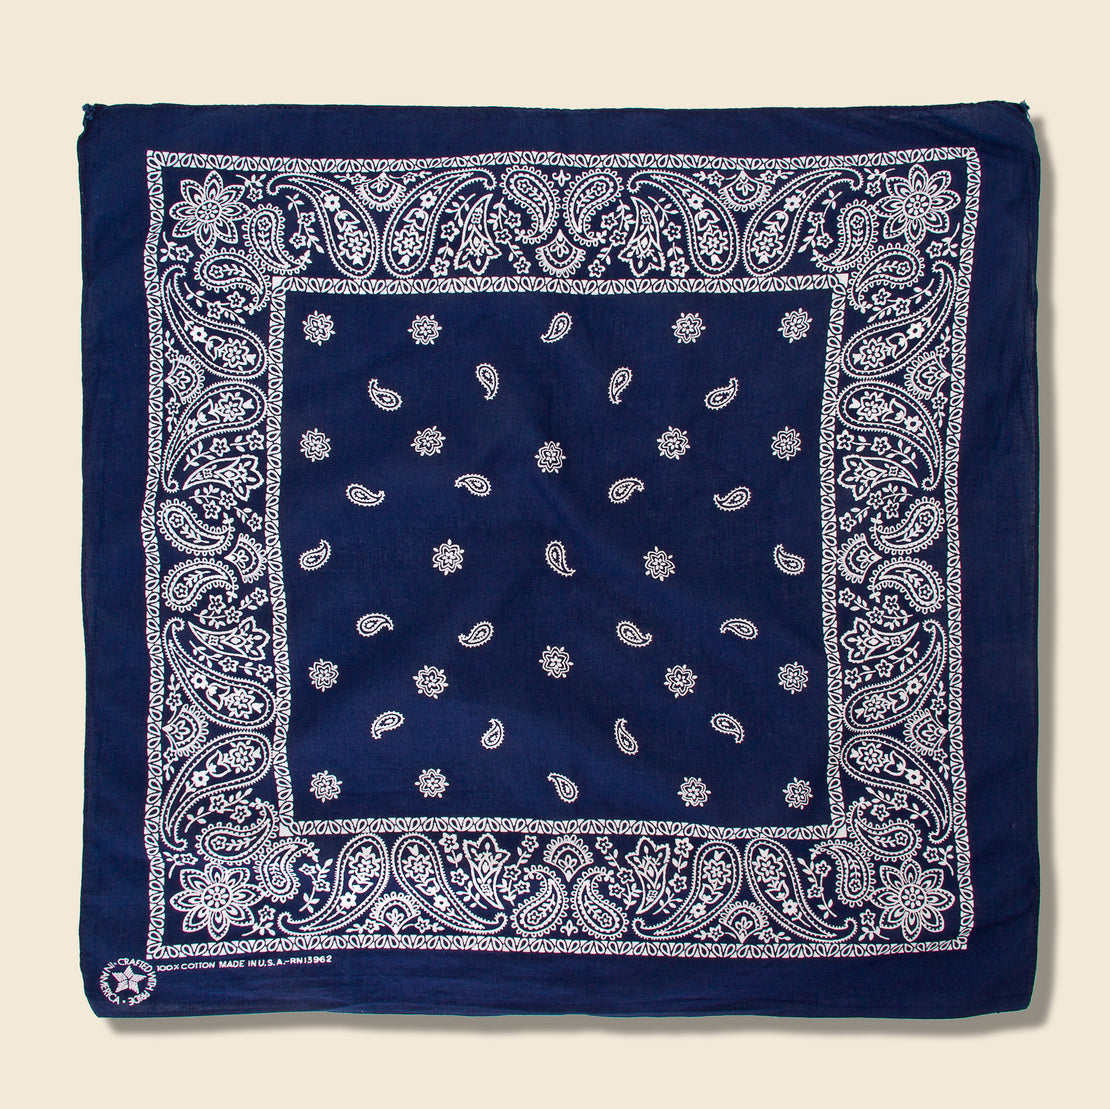 Vintage Cotton Paisley Bandana - Blue/White